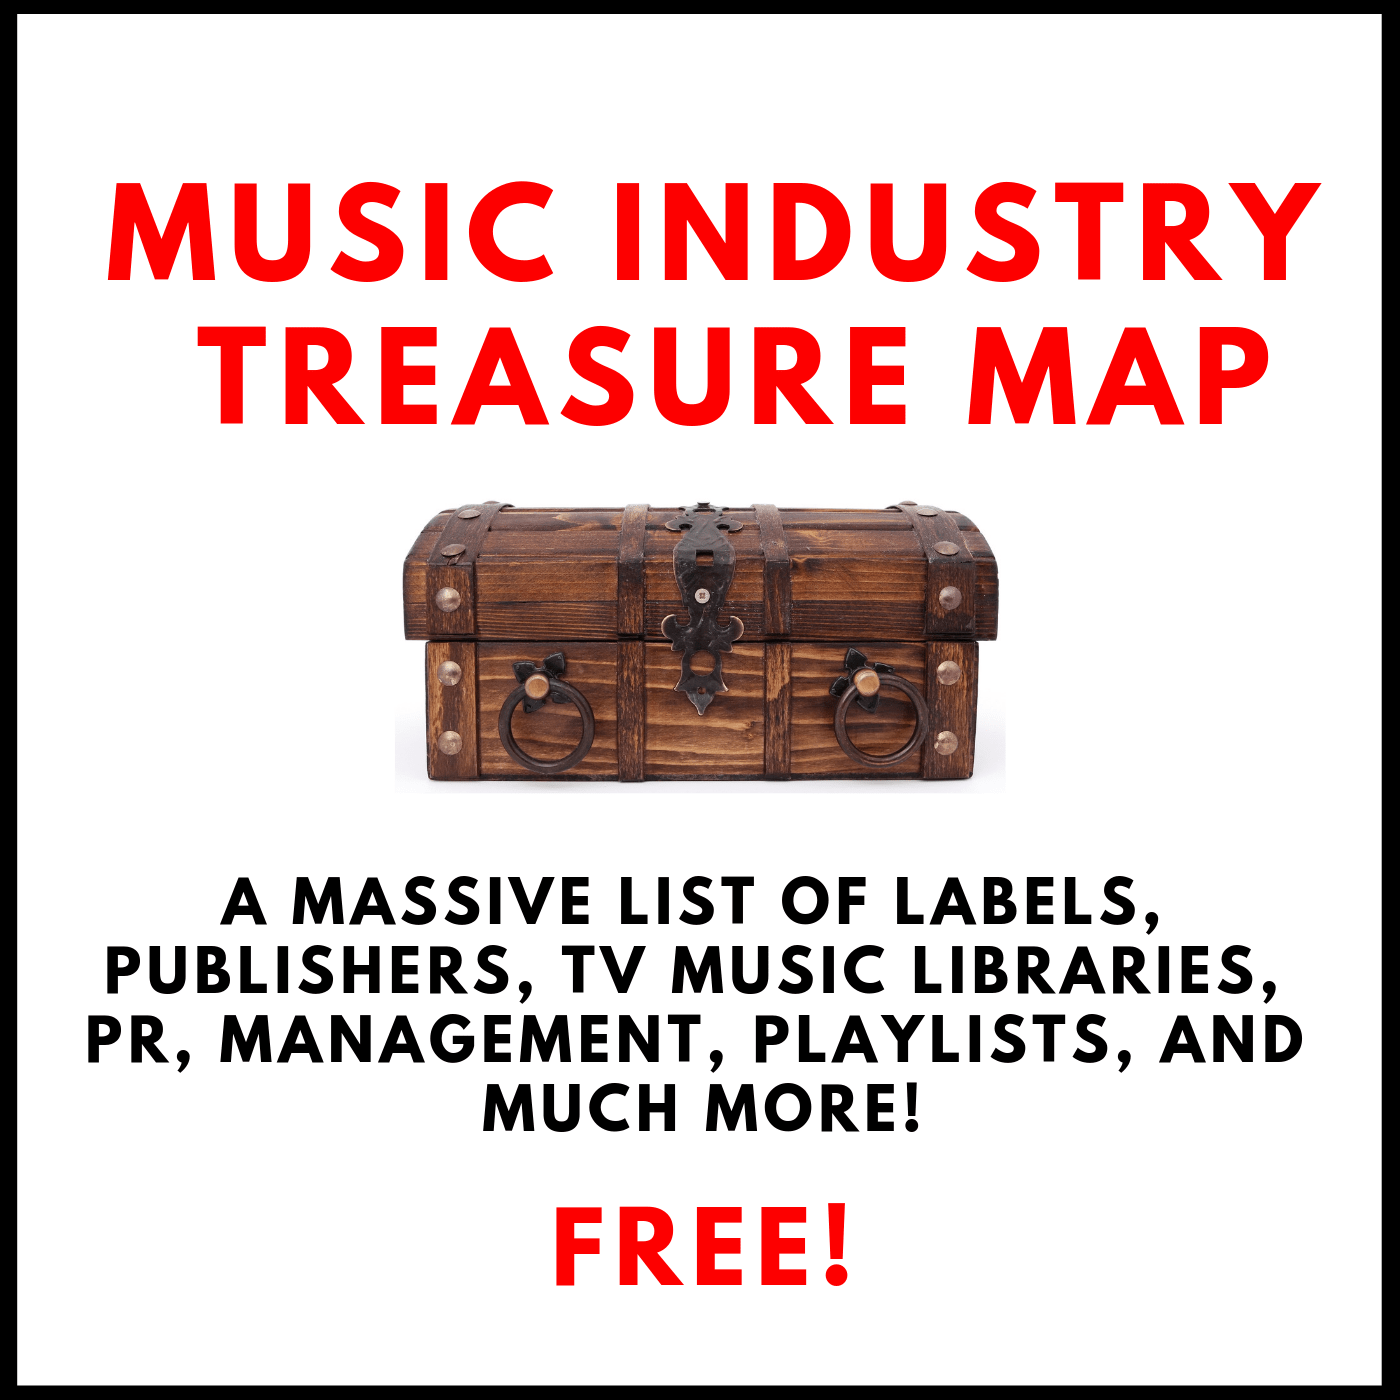 Music Industry Treasure Map-1-min.png